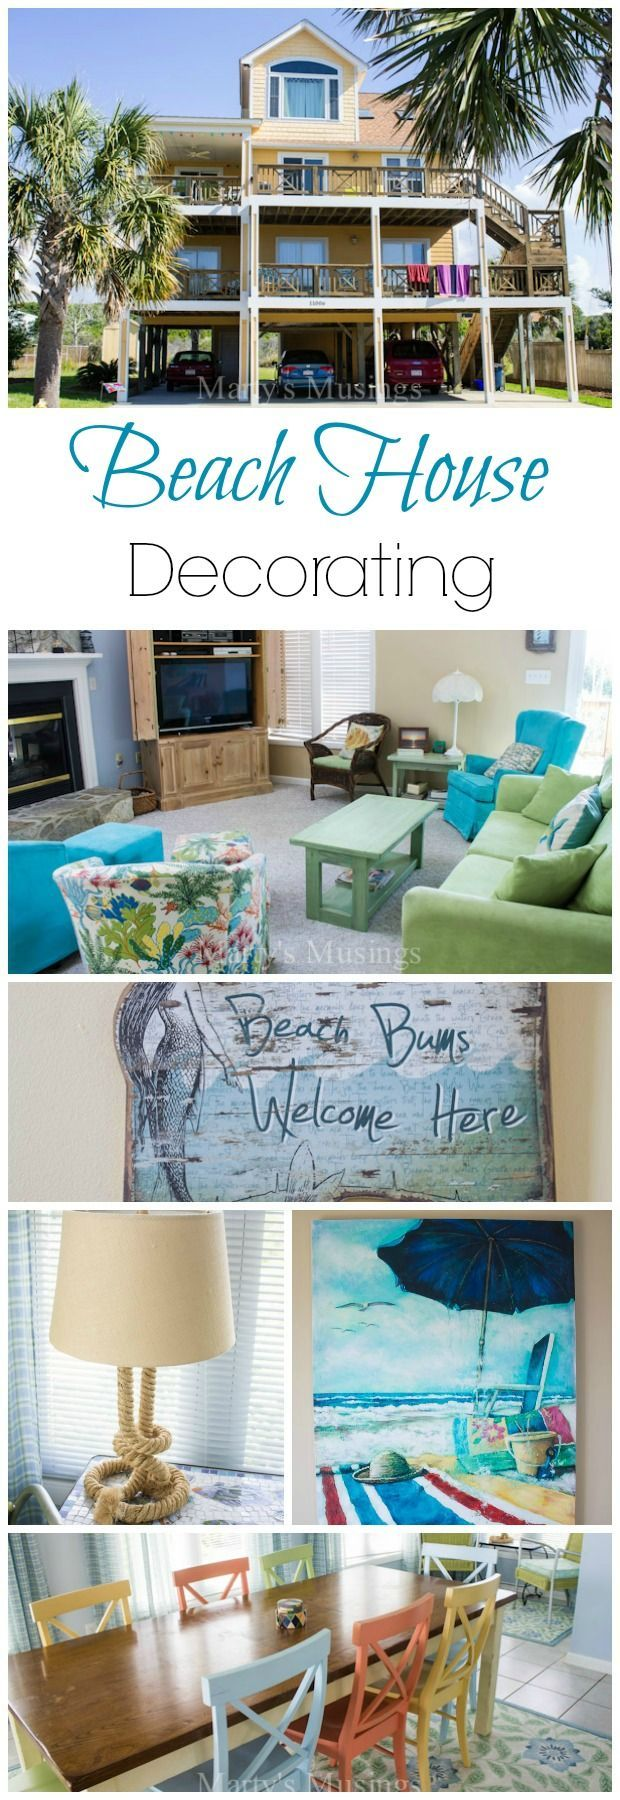 164 best Palm Beach Style images on Pinterest | Beach styles, Palm ...